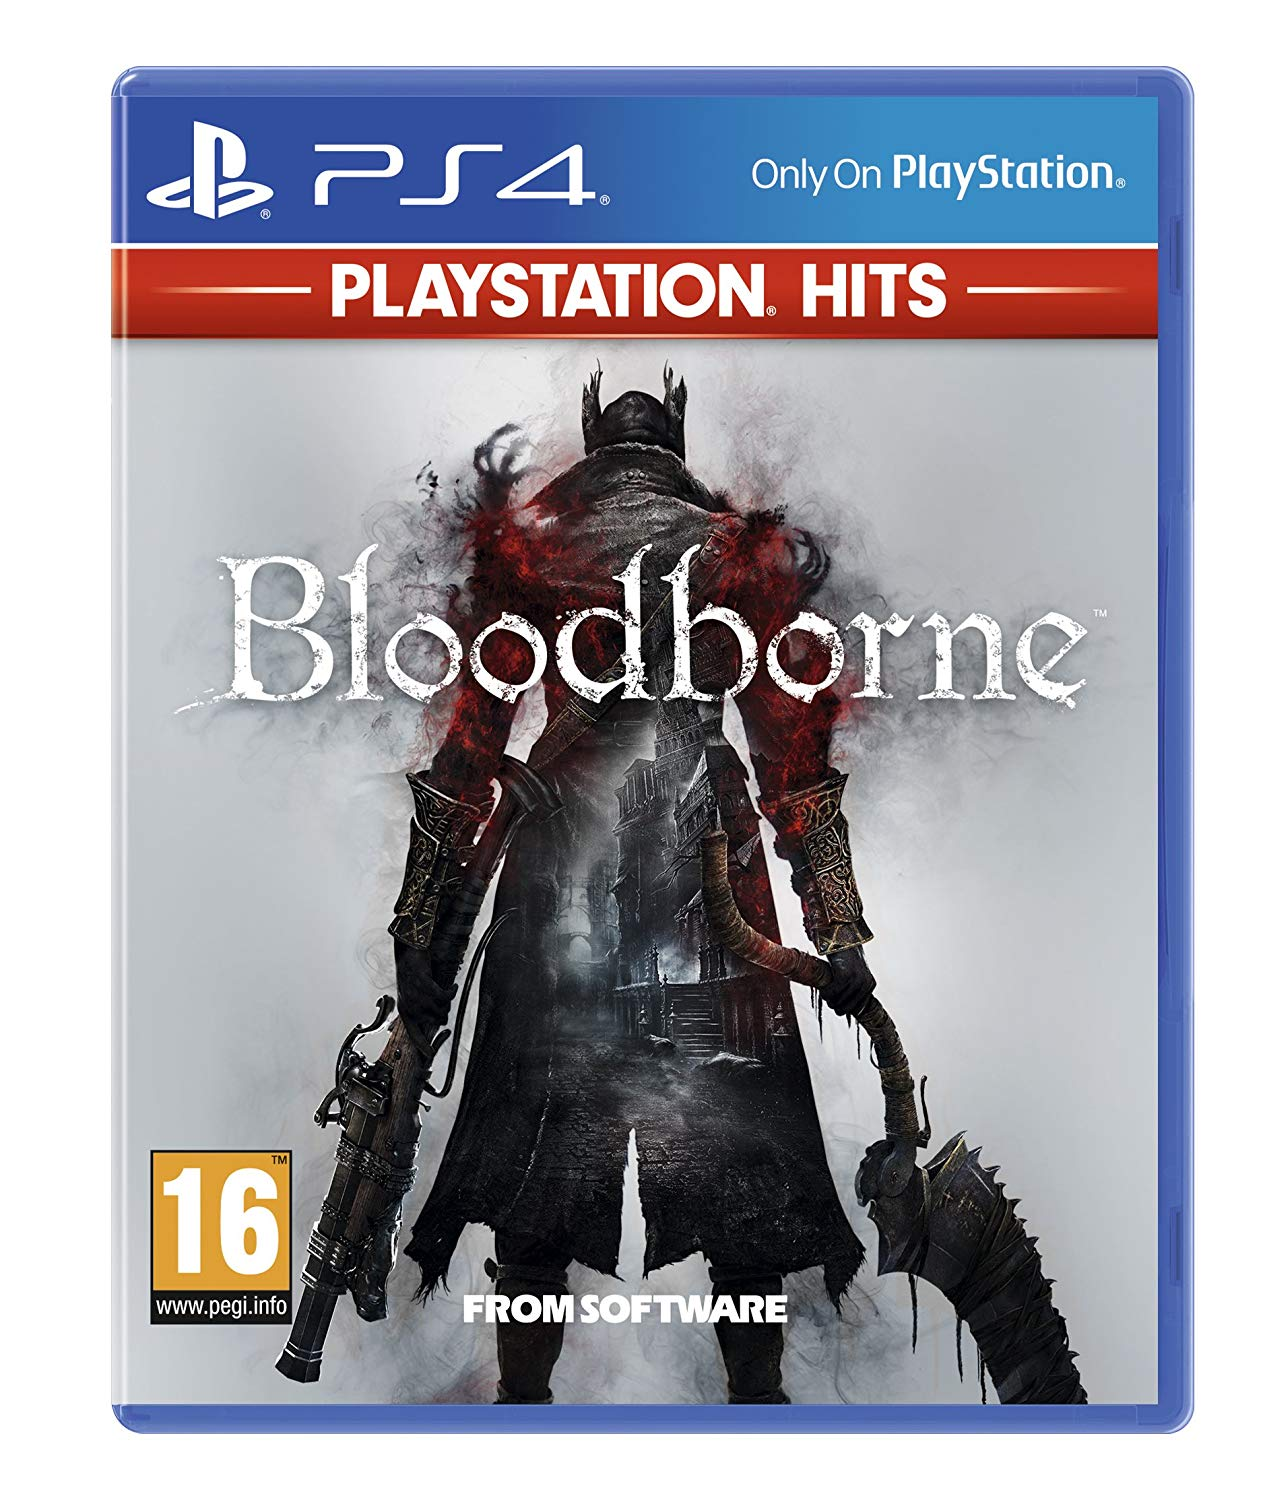 Bloodborne - PlayStation Hits PS4, PS4, DVDMEGASTORE, DVDMEGASTORE